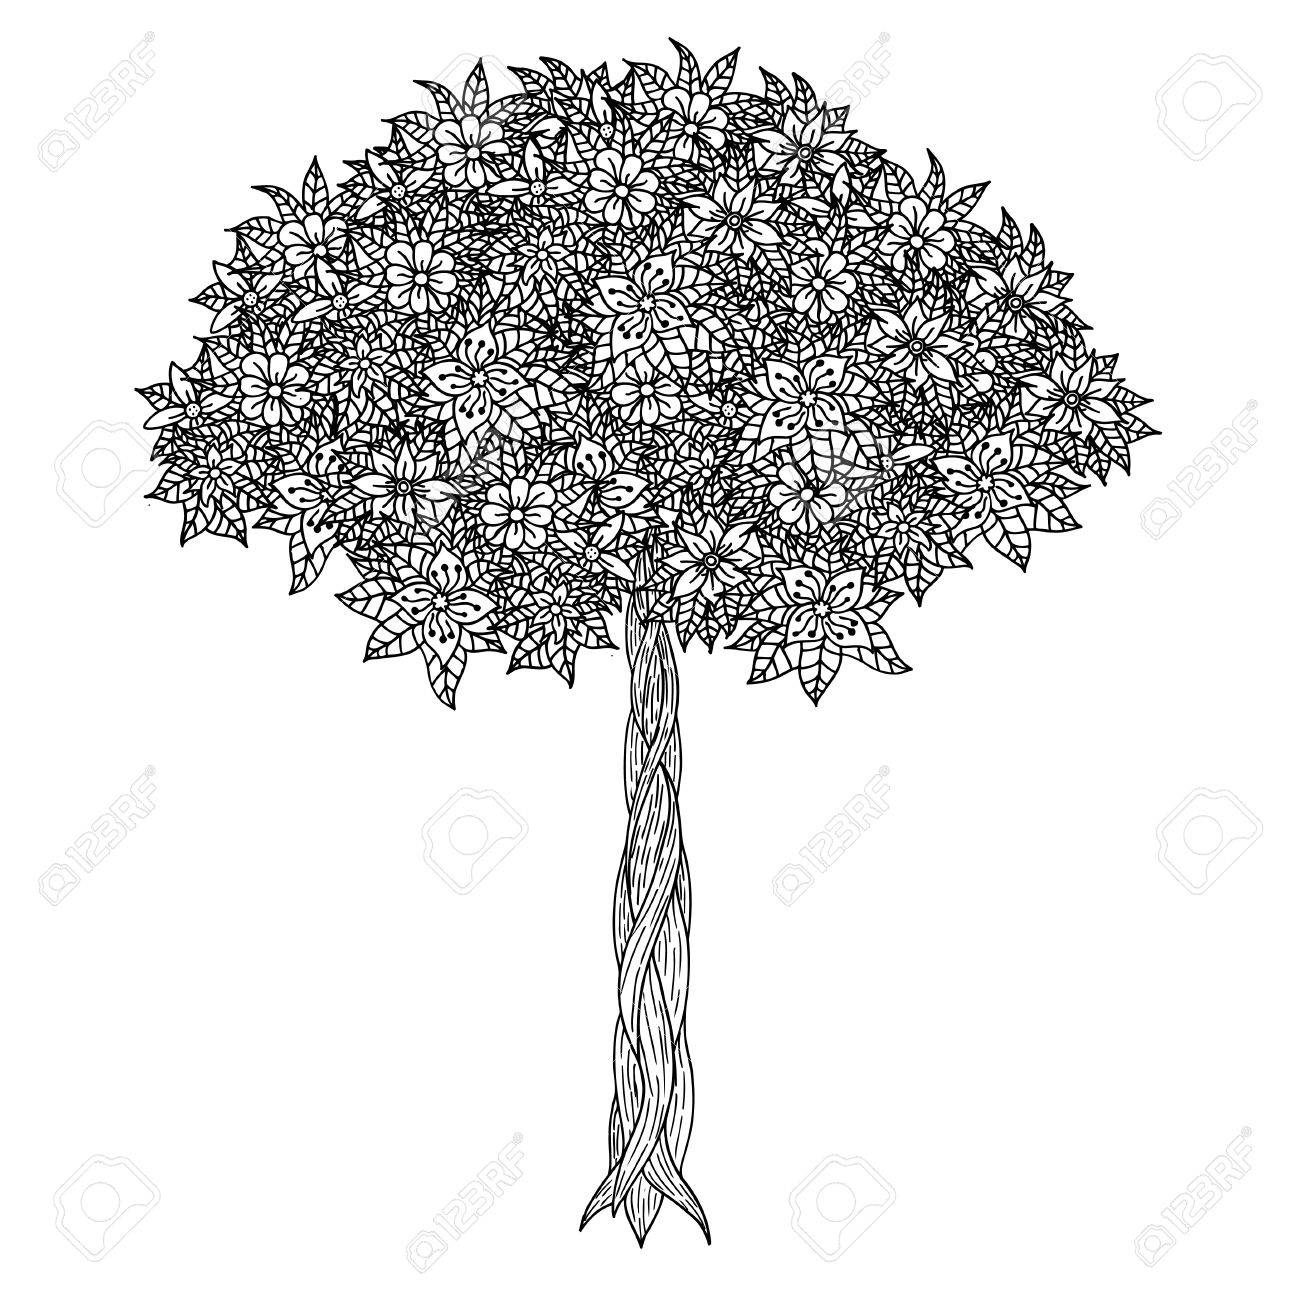 Tree With Leaves And Flowers Vector Coloring Book Page For Adults Hand Drawn